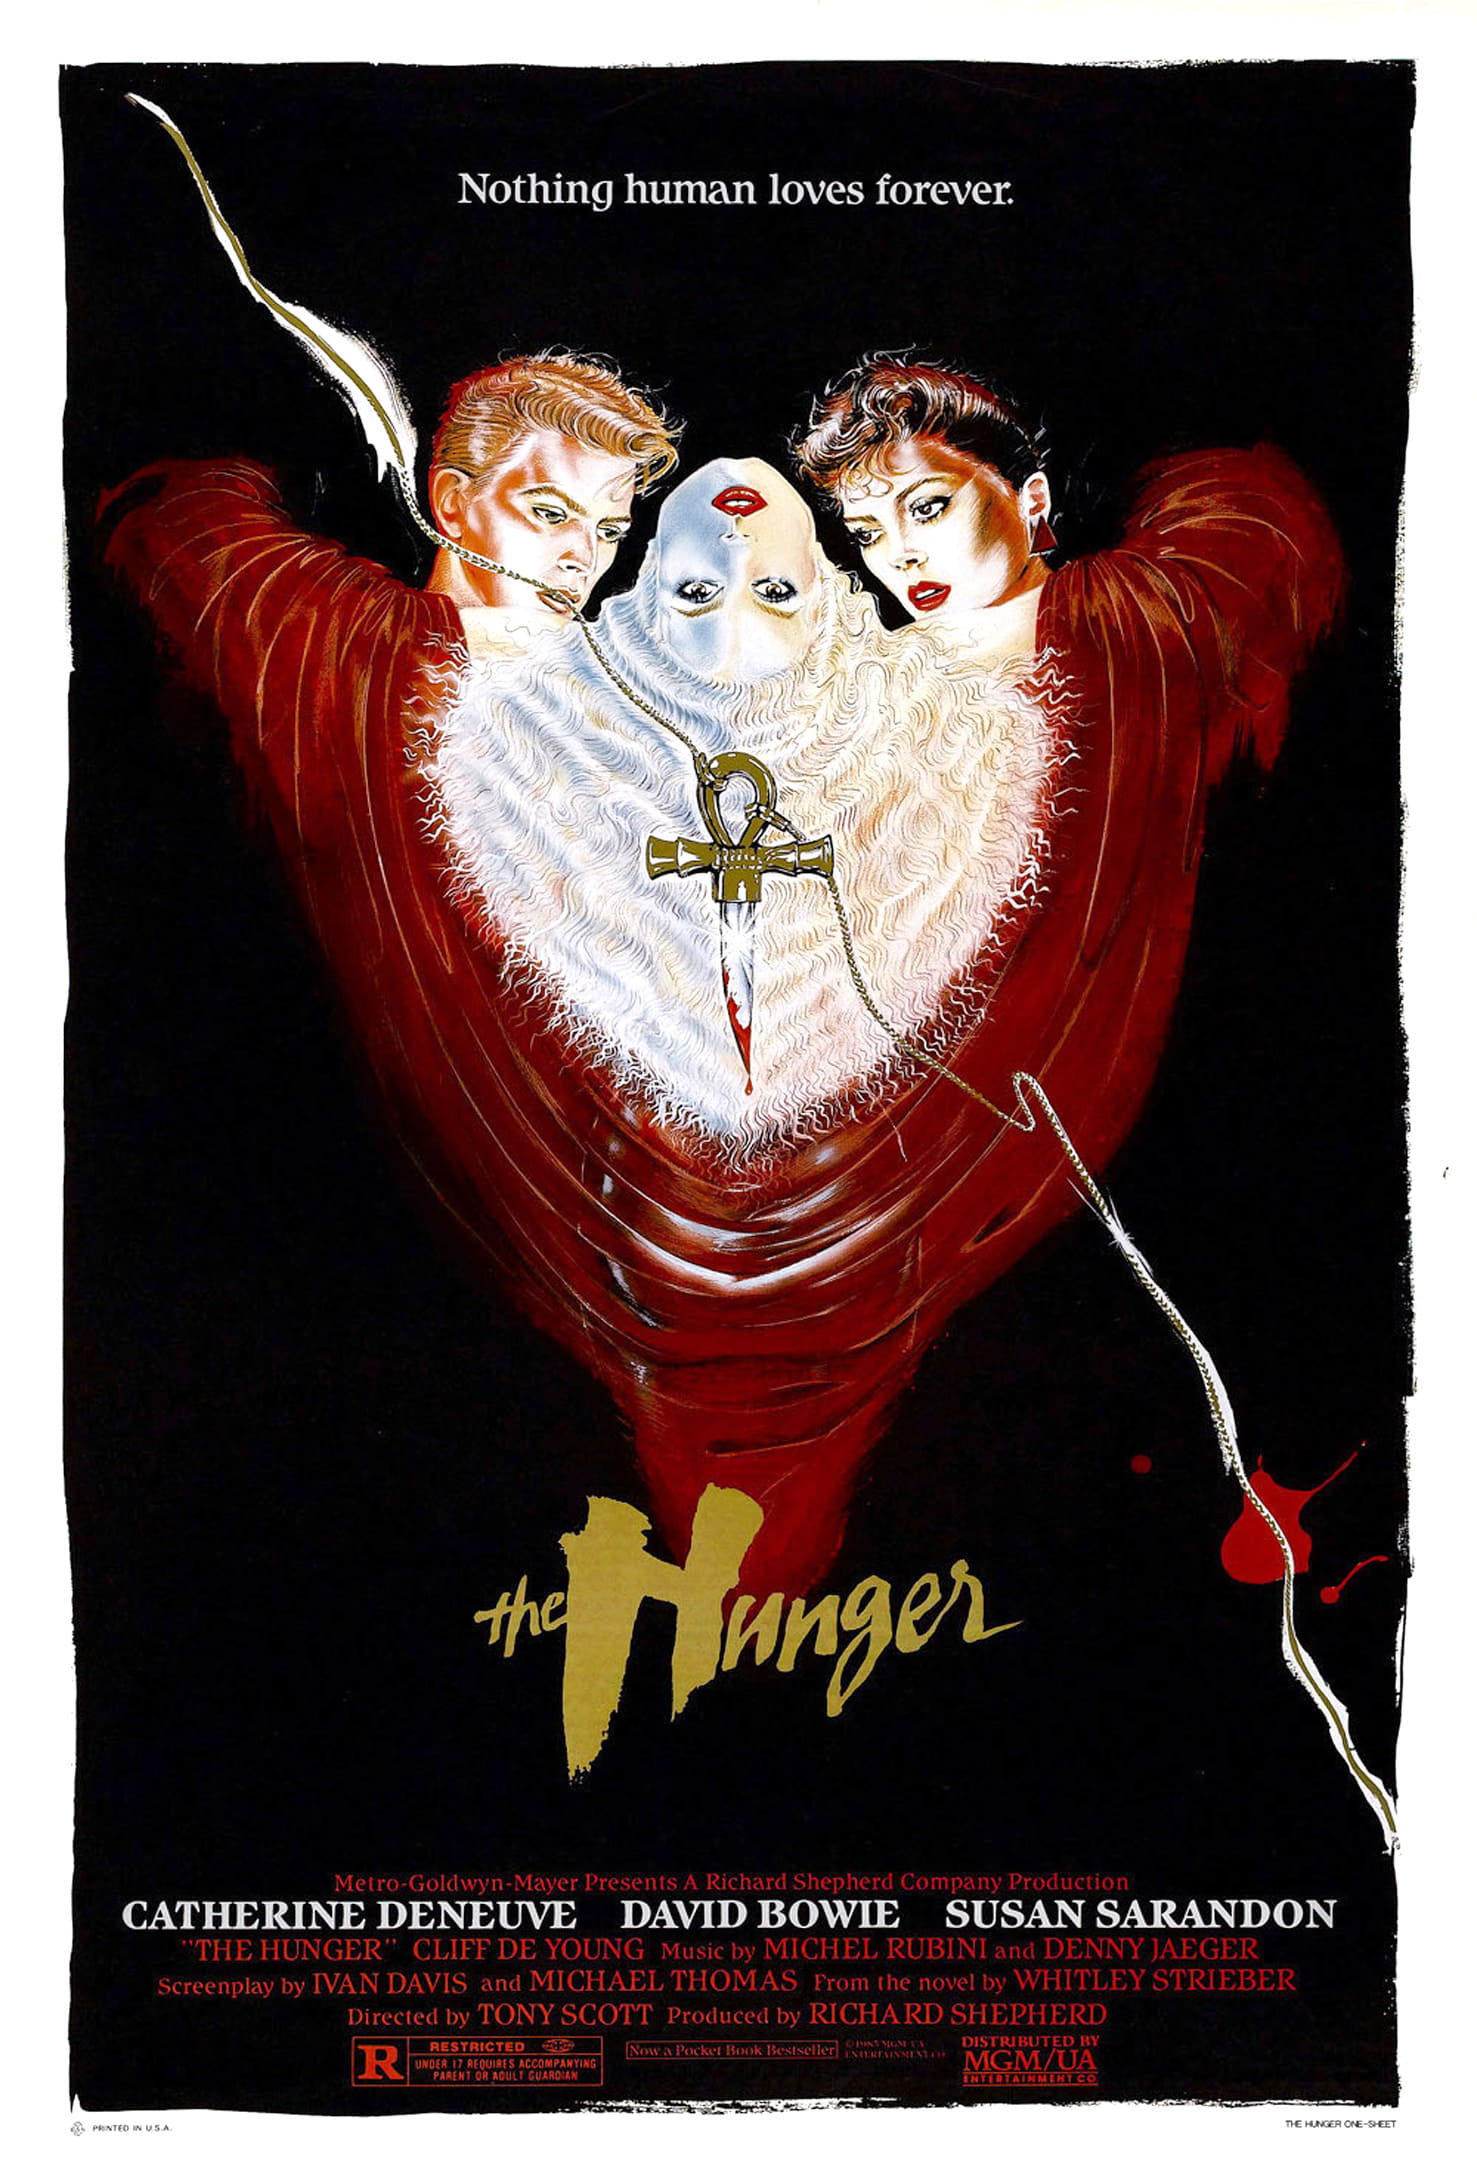 ALKIS (1983) / THE HUNGER